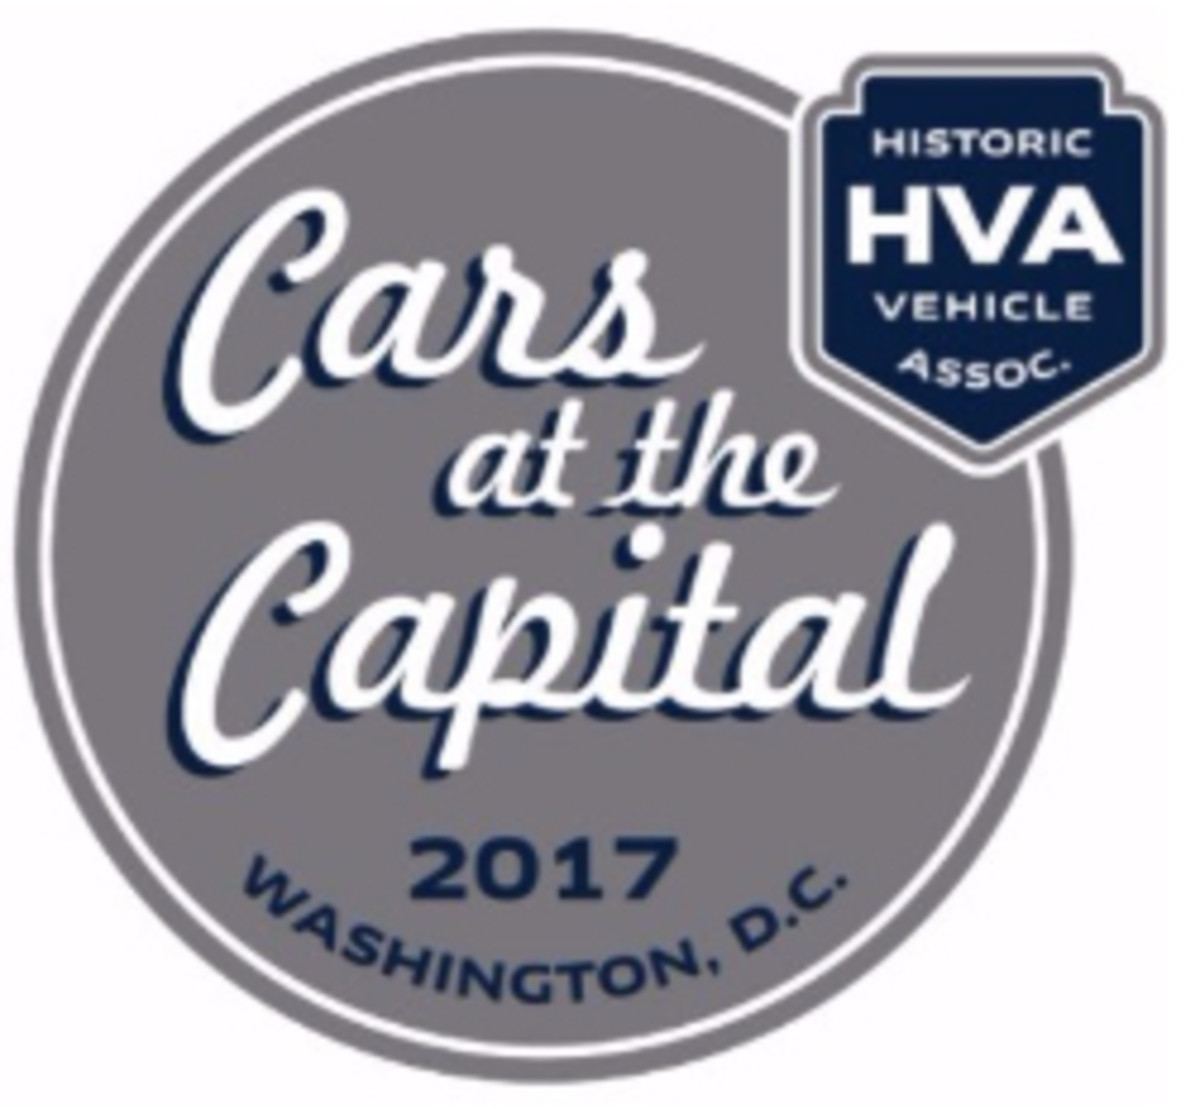 Cars at the Capital